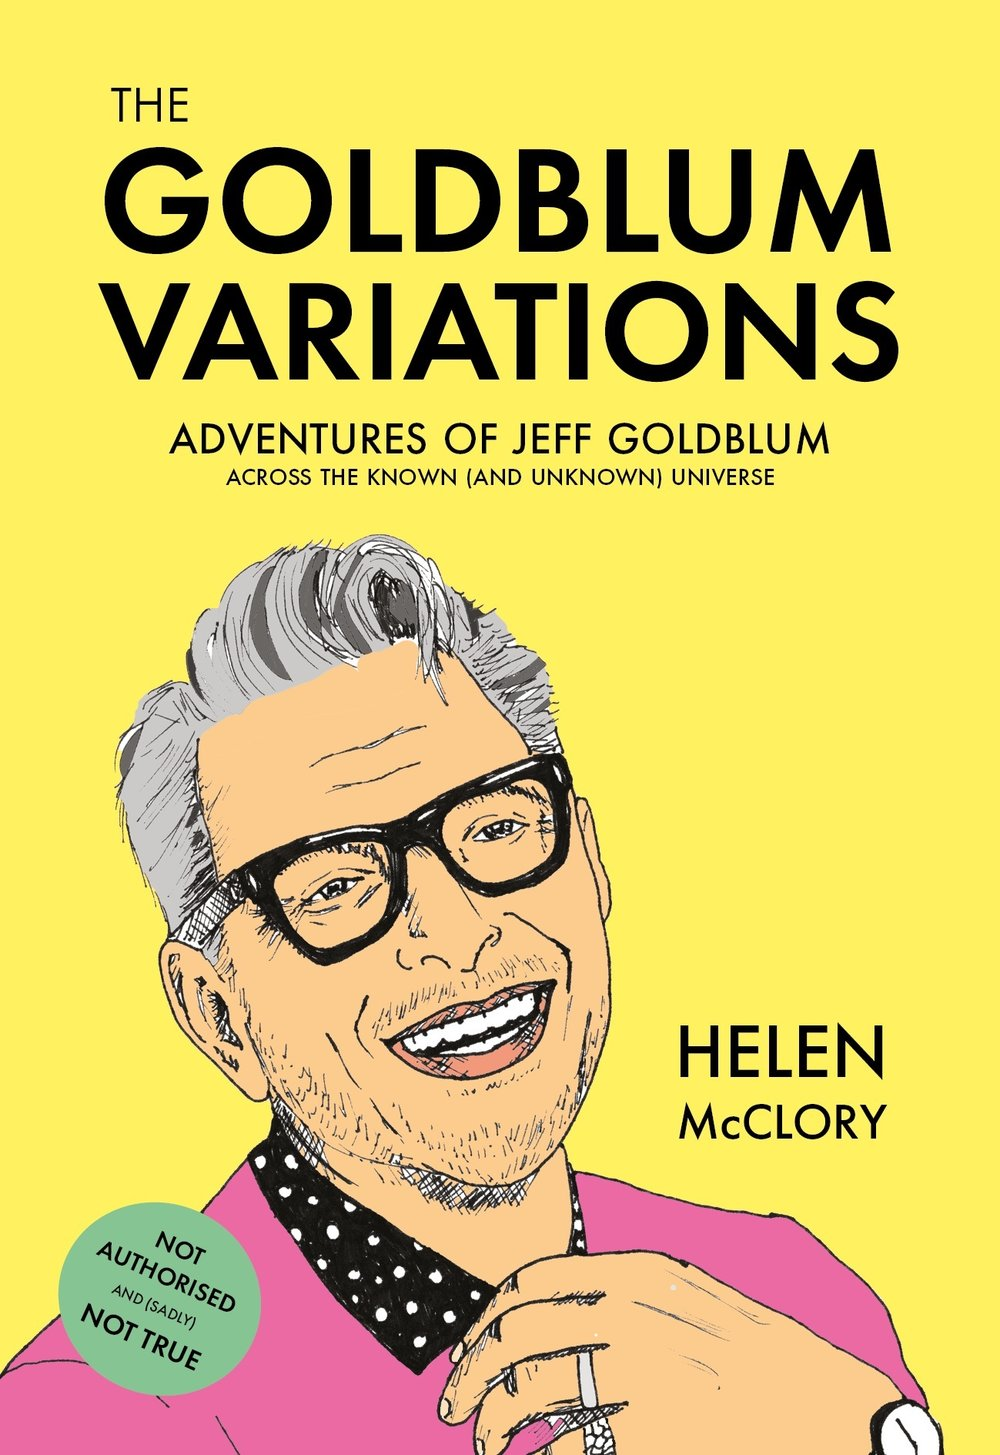 THE GOLDBLUM VARIATIONS   You like Jeff Goldblum. We like Jeff Goldblum. Helen McClory  really  likes Jeff Goldblum.   Enjoy The Goldblum Variations, a collection of flash fictions, stories and games on the one and only Jeff Goldblum as he, and alternate versions of himself, travels through the known (and unknown) universe in a mighty celebration of weird and wonderful Goldbluminess.  Maybe he's cooking, maybe he's wearing a nice jumper, maybe he's reading this very pamphlet. The possibilities are endless.  Treat yourself, because all that glitters is Goldblum.